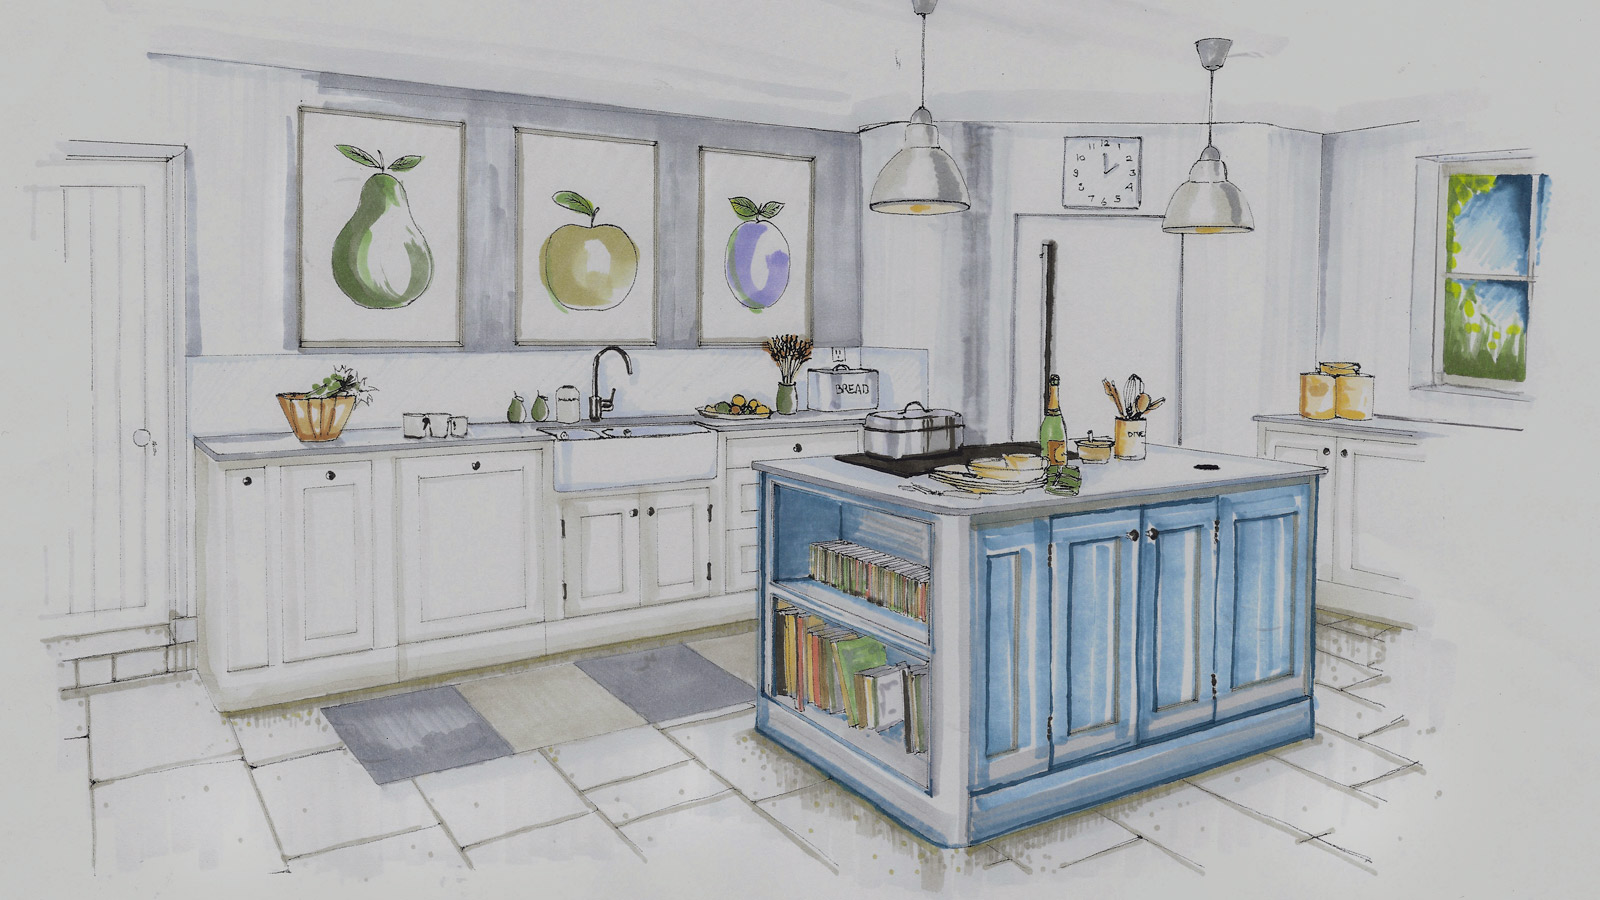 Pemberton kitchen sketch